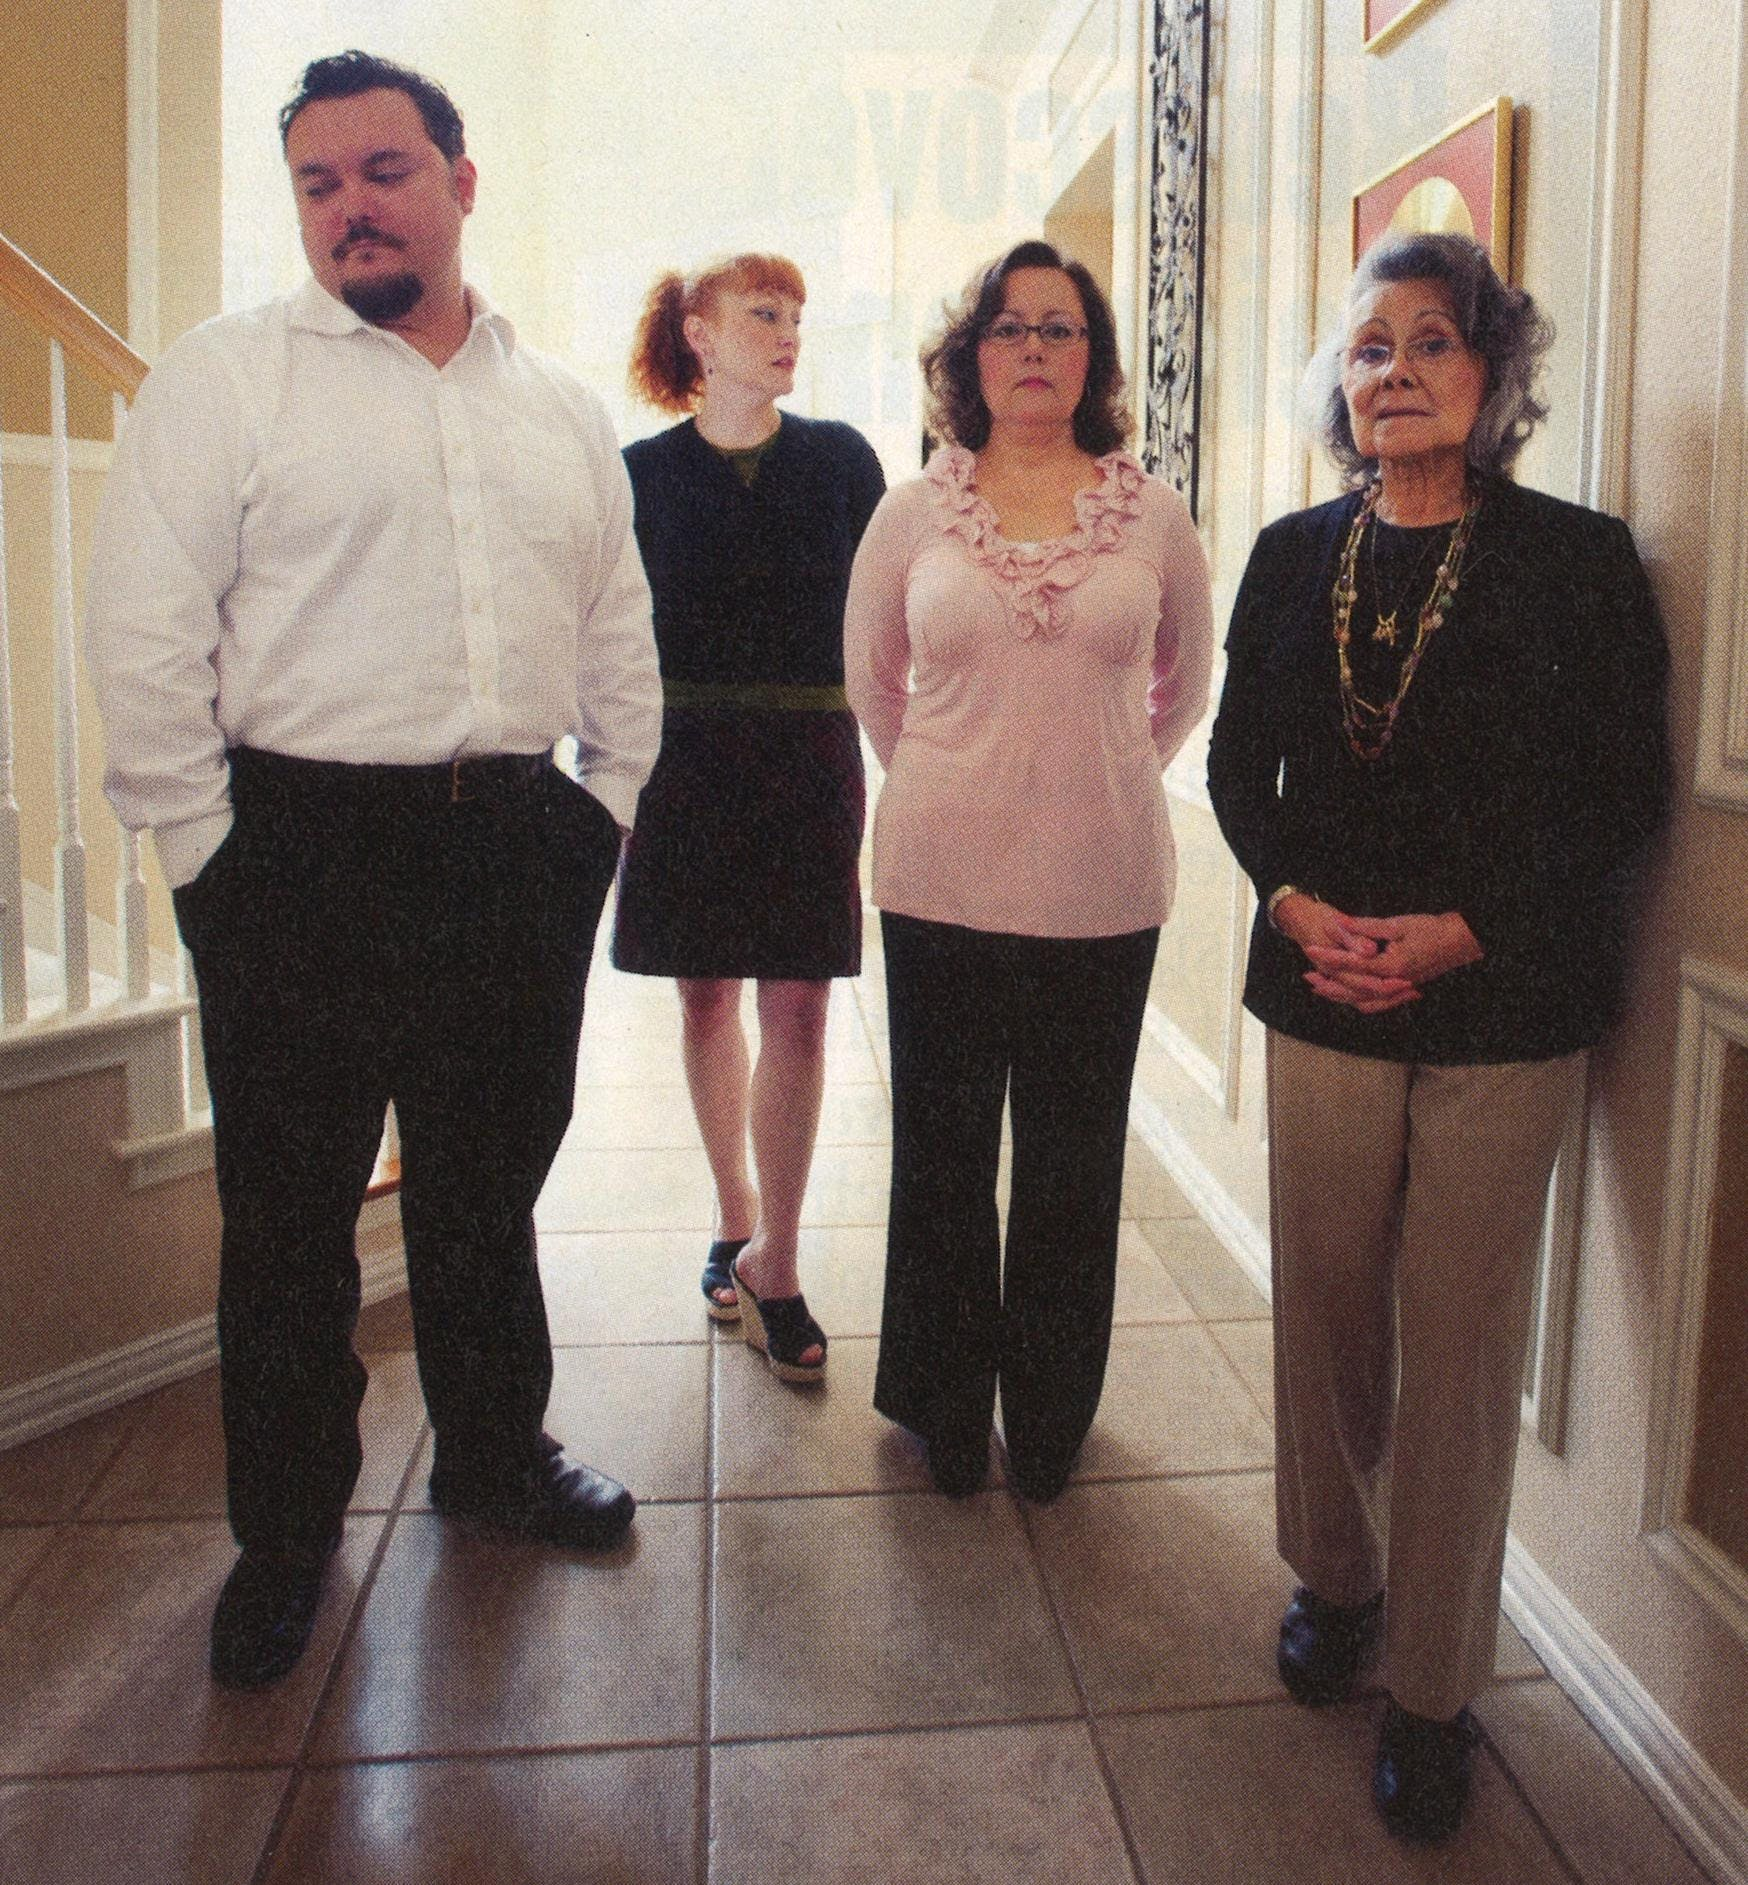 Pedro, Georgina, Martha Maria, and Martha Haley, in Martha's house in McKinney on March 5, 2011.